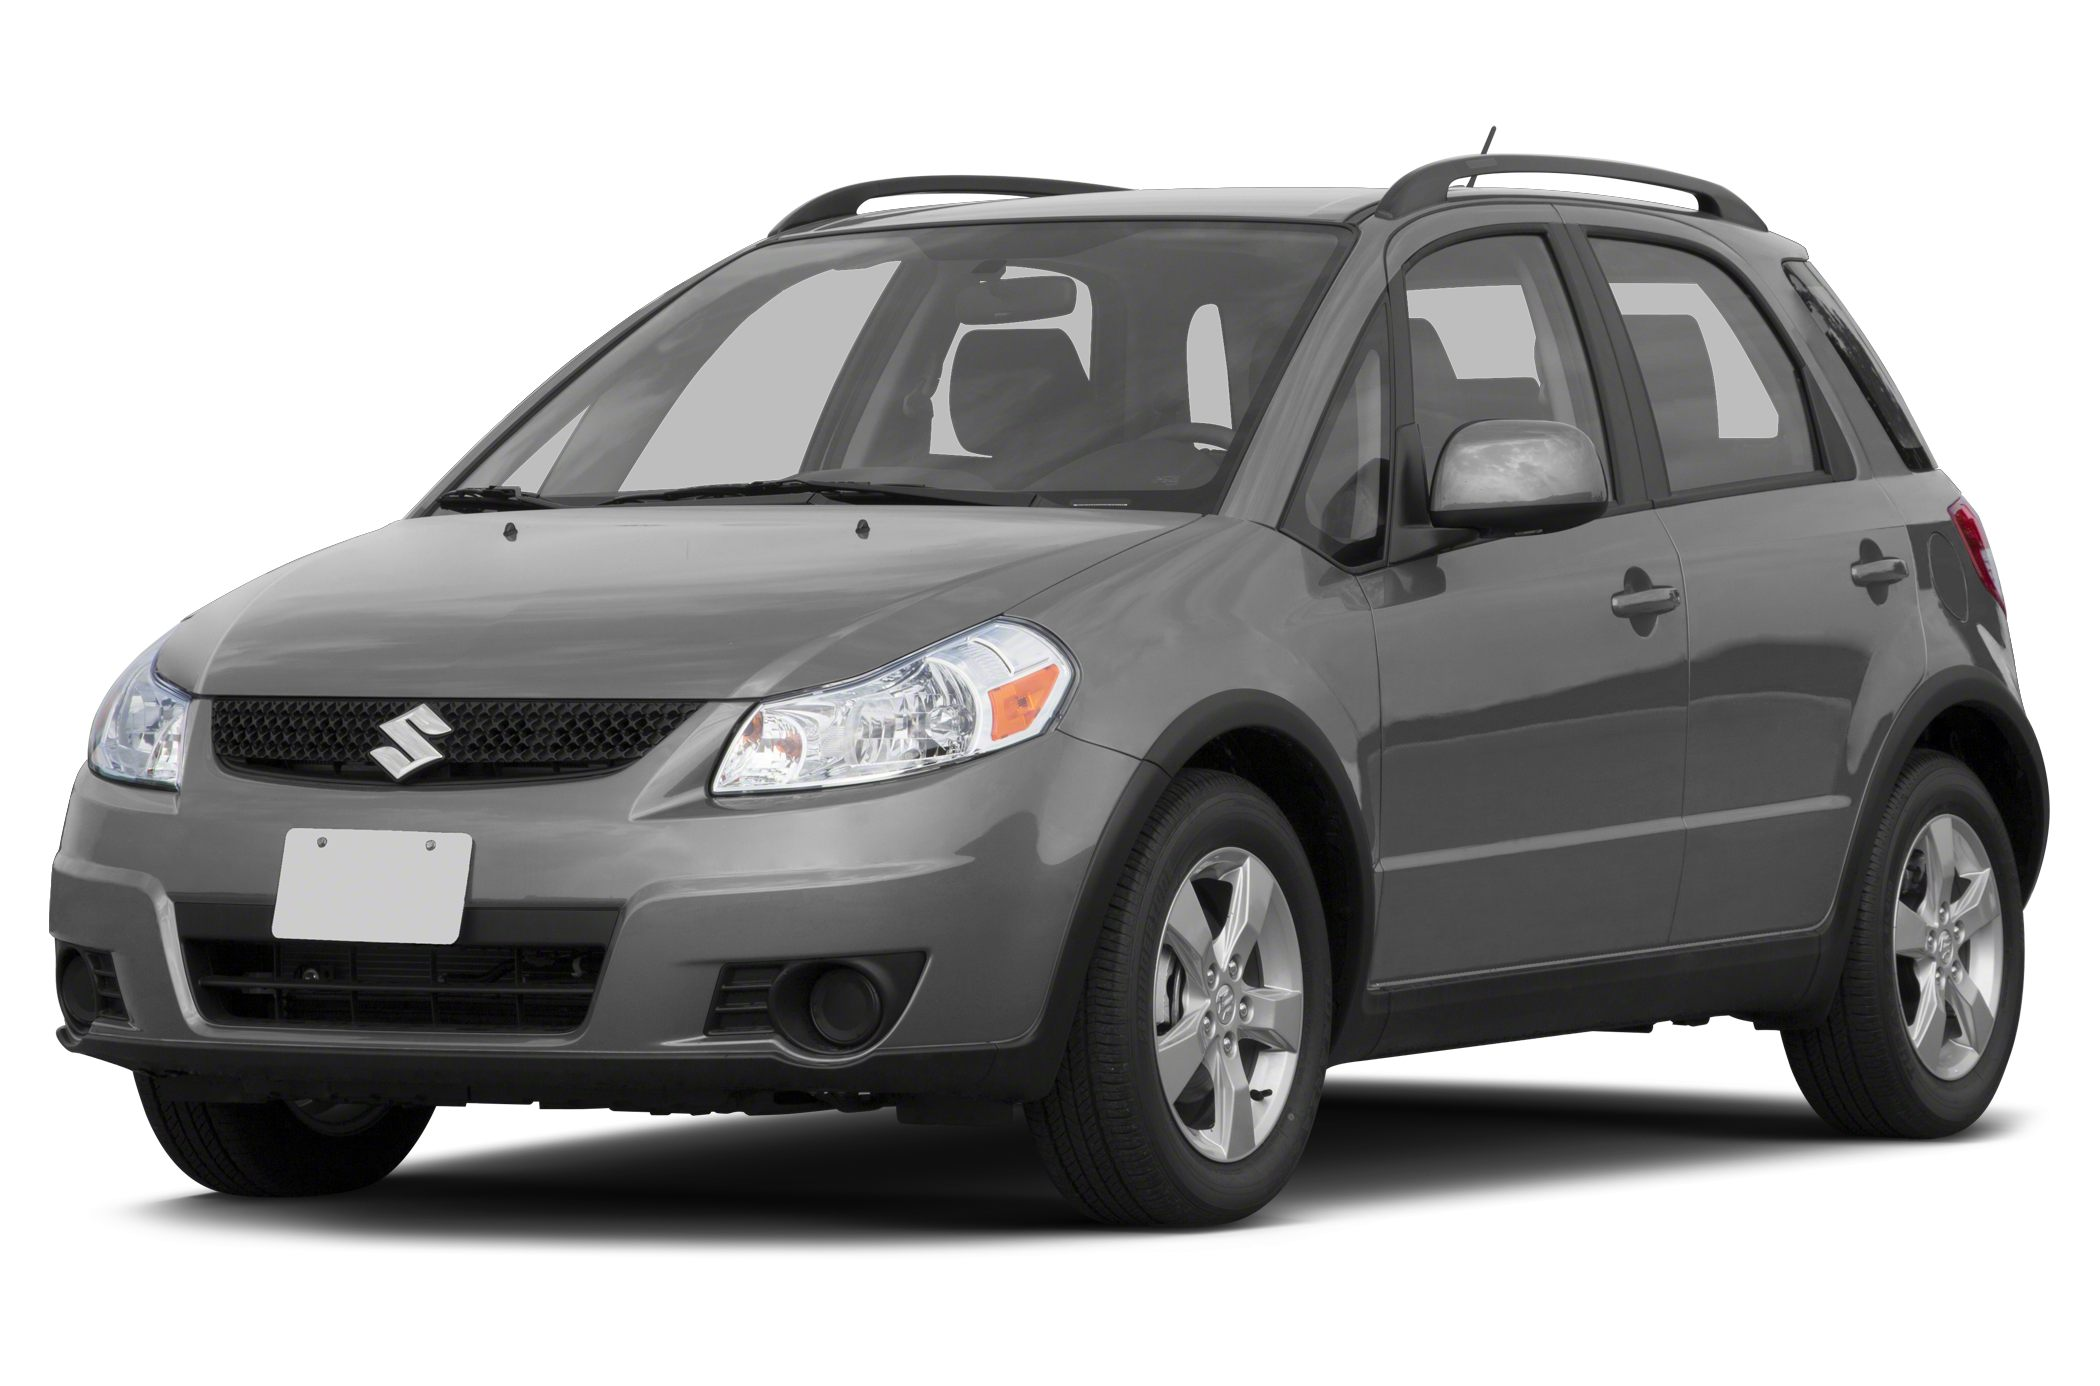 2011 Suzuki SX4